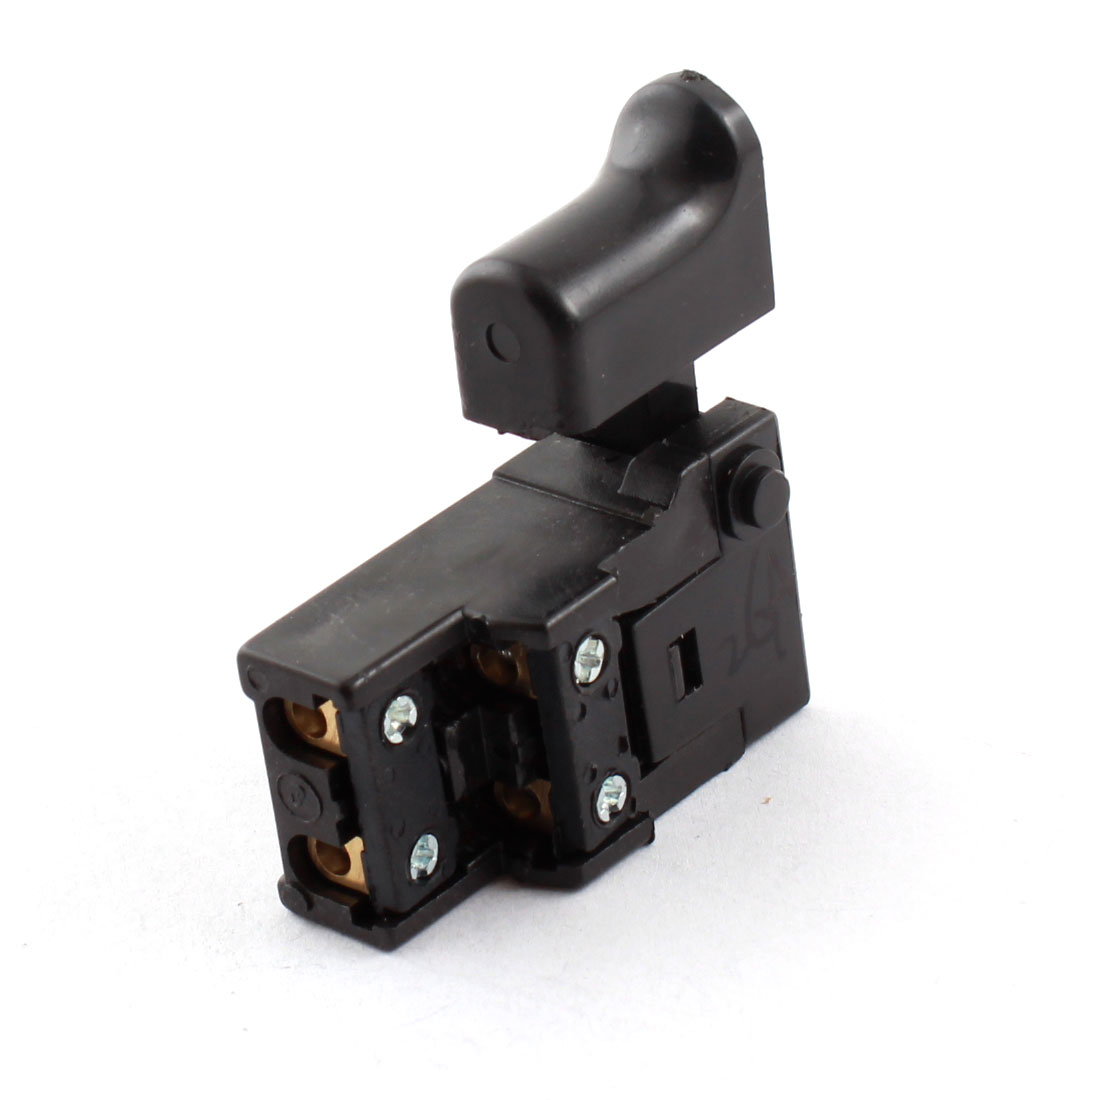 AC 250V 6A Momentary Manual Trigger Switch for Marble Cutting